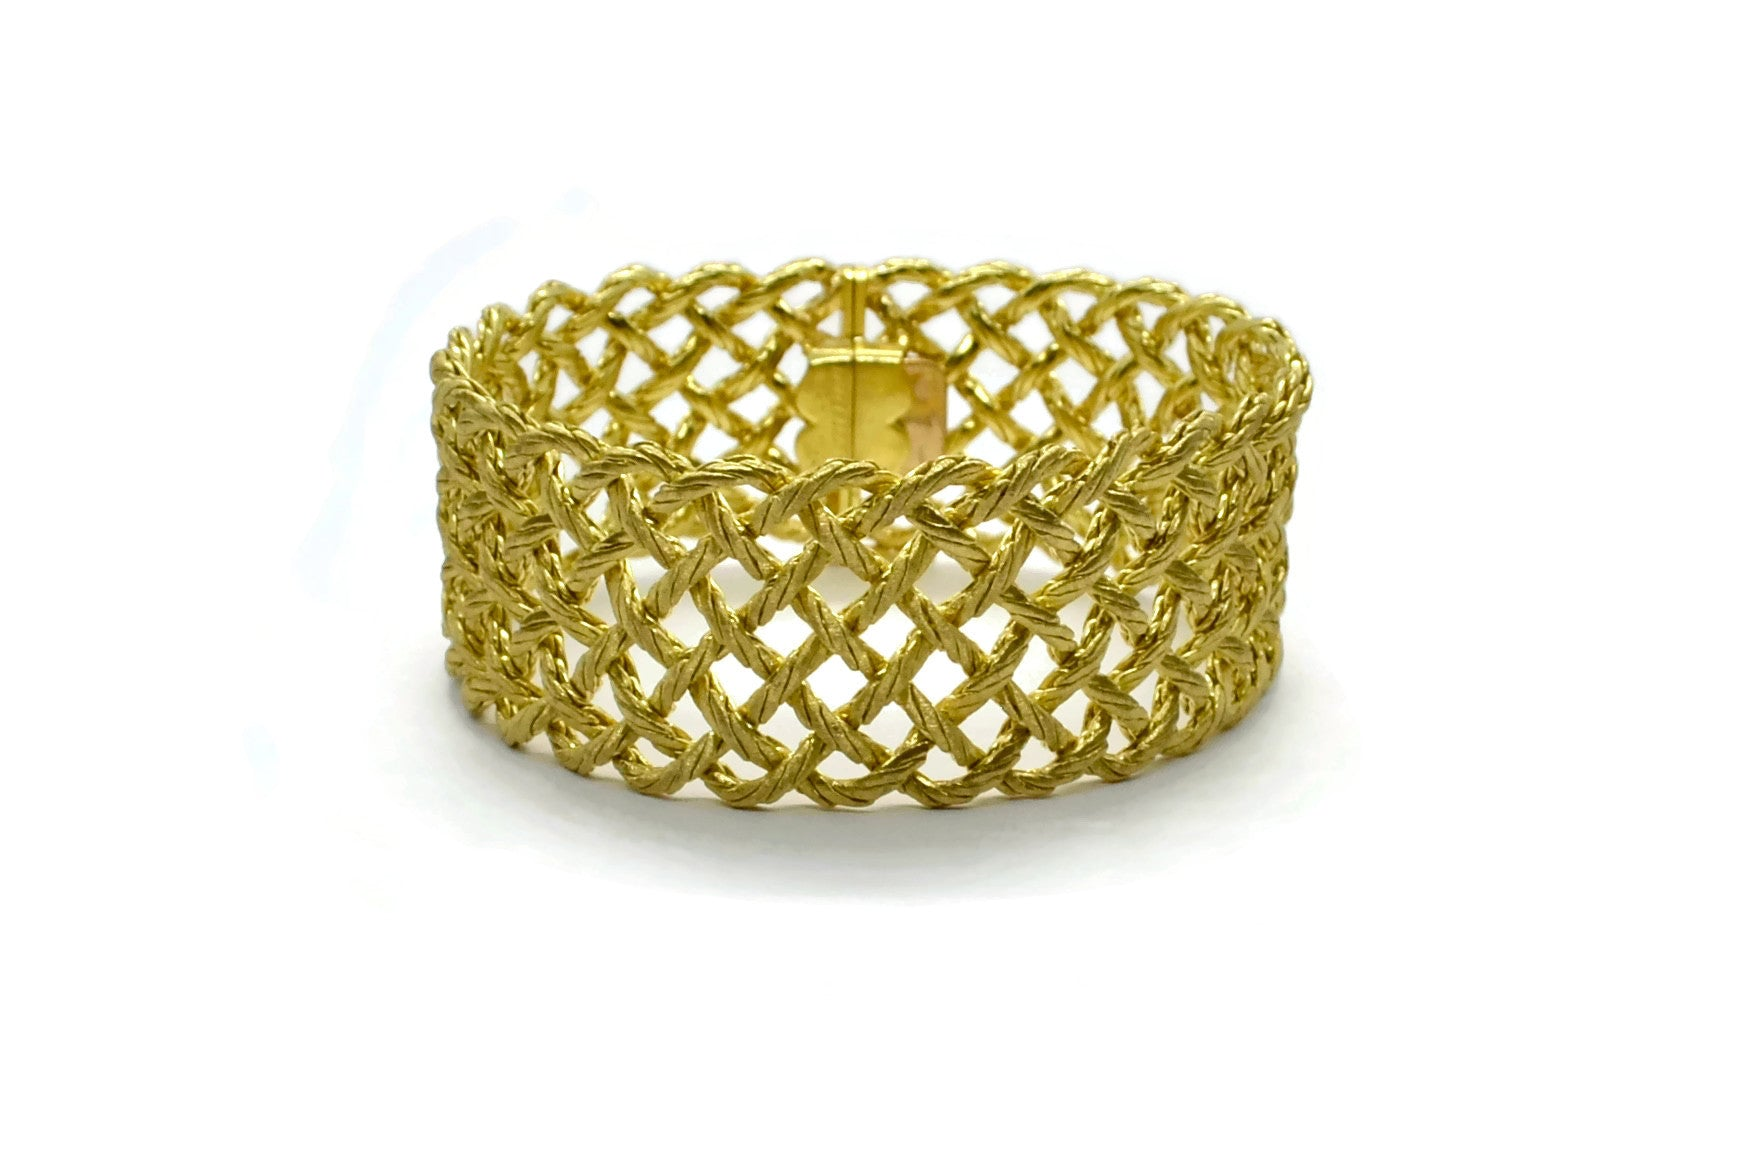 BUCCELLATI-CREPE-DE_CHINE-BRACELET-YELLOW-GOLD-AF-JEWELERS-NAPA-VALLEY